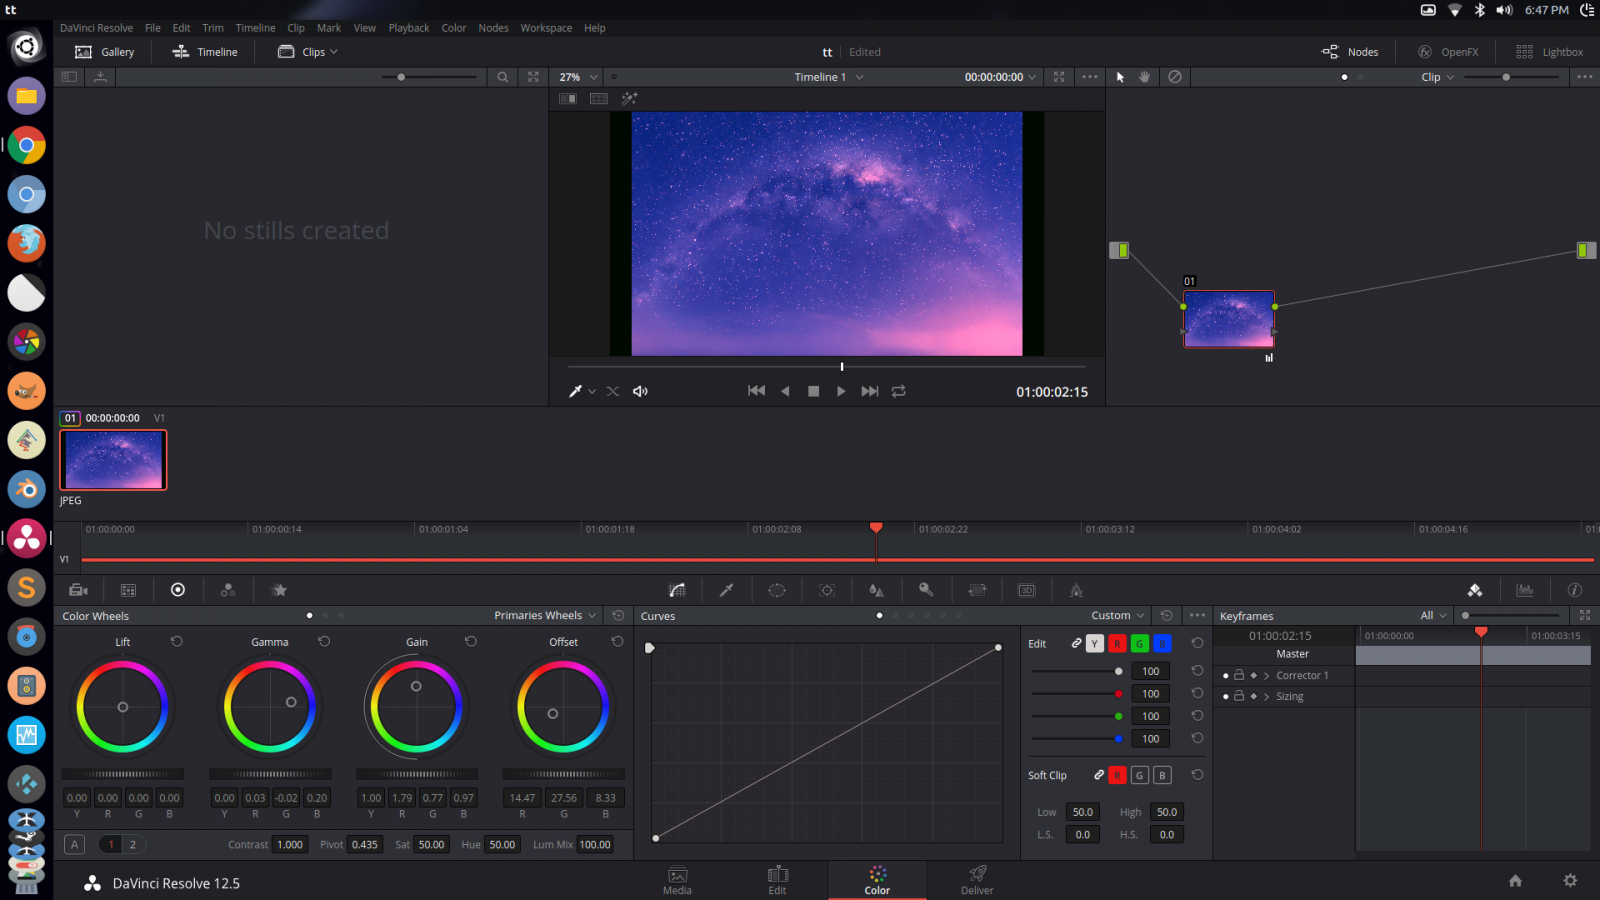 How to install Blackmagic Design DaVinci Resolve on Ubuntu | How To